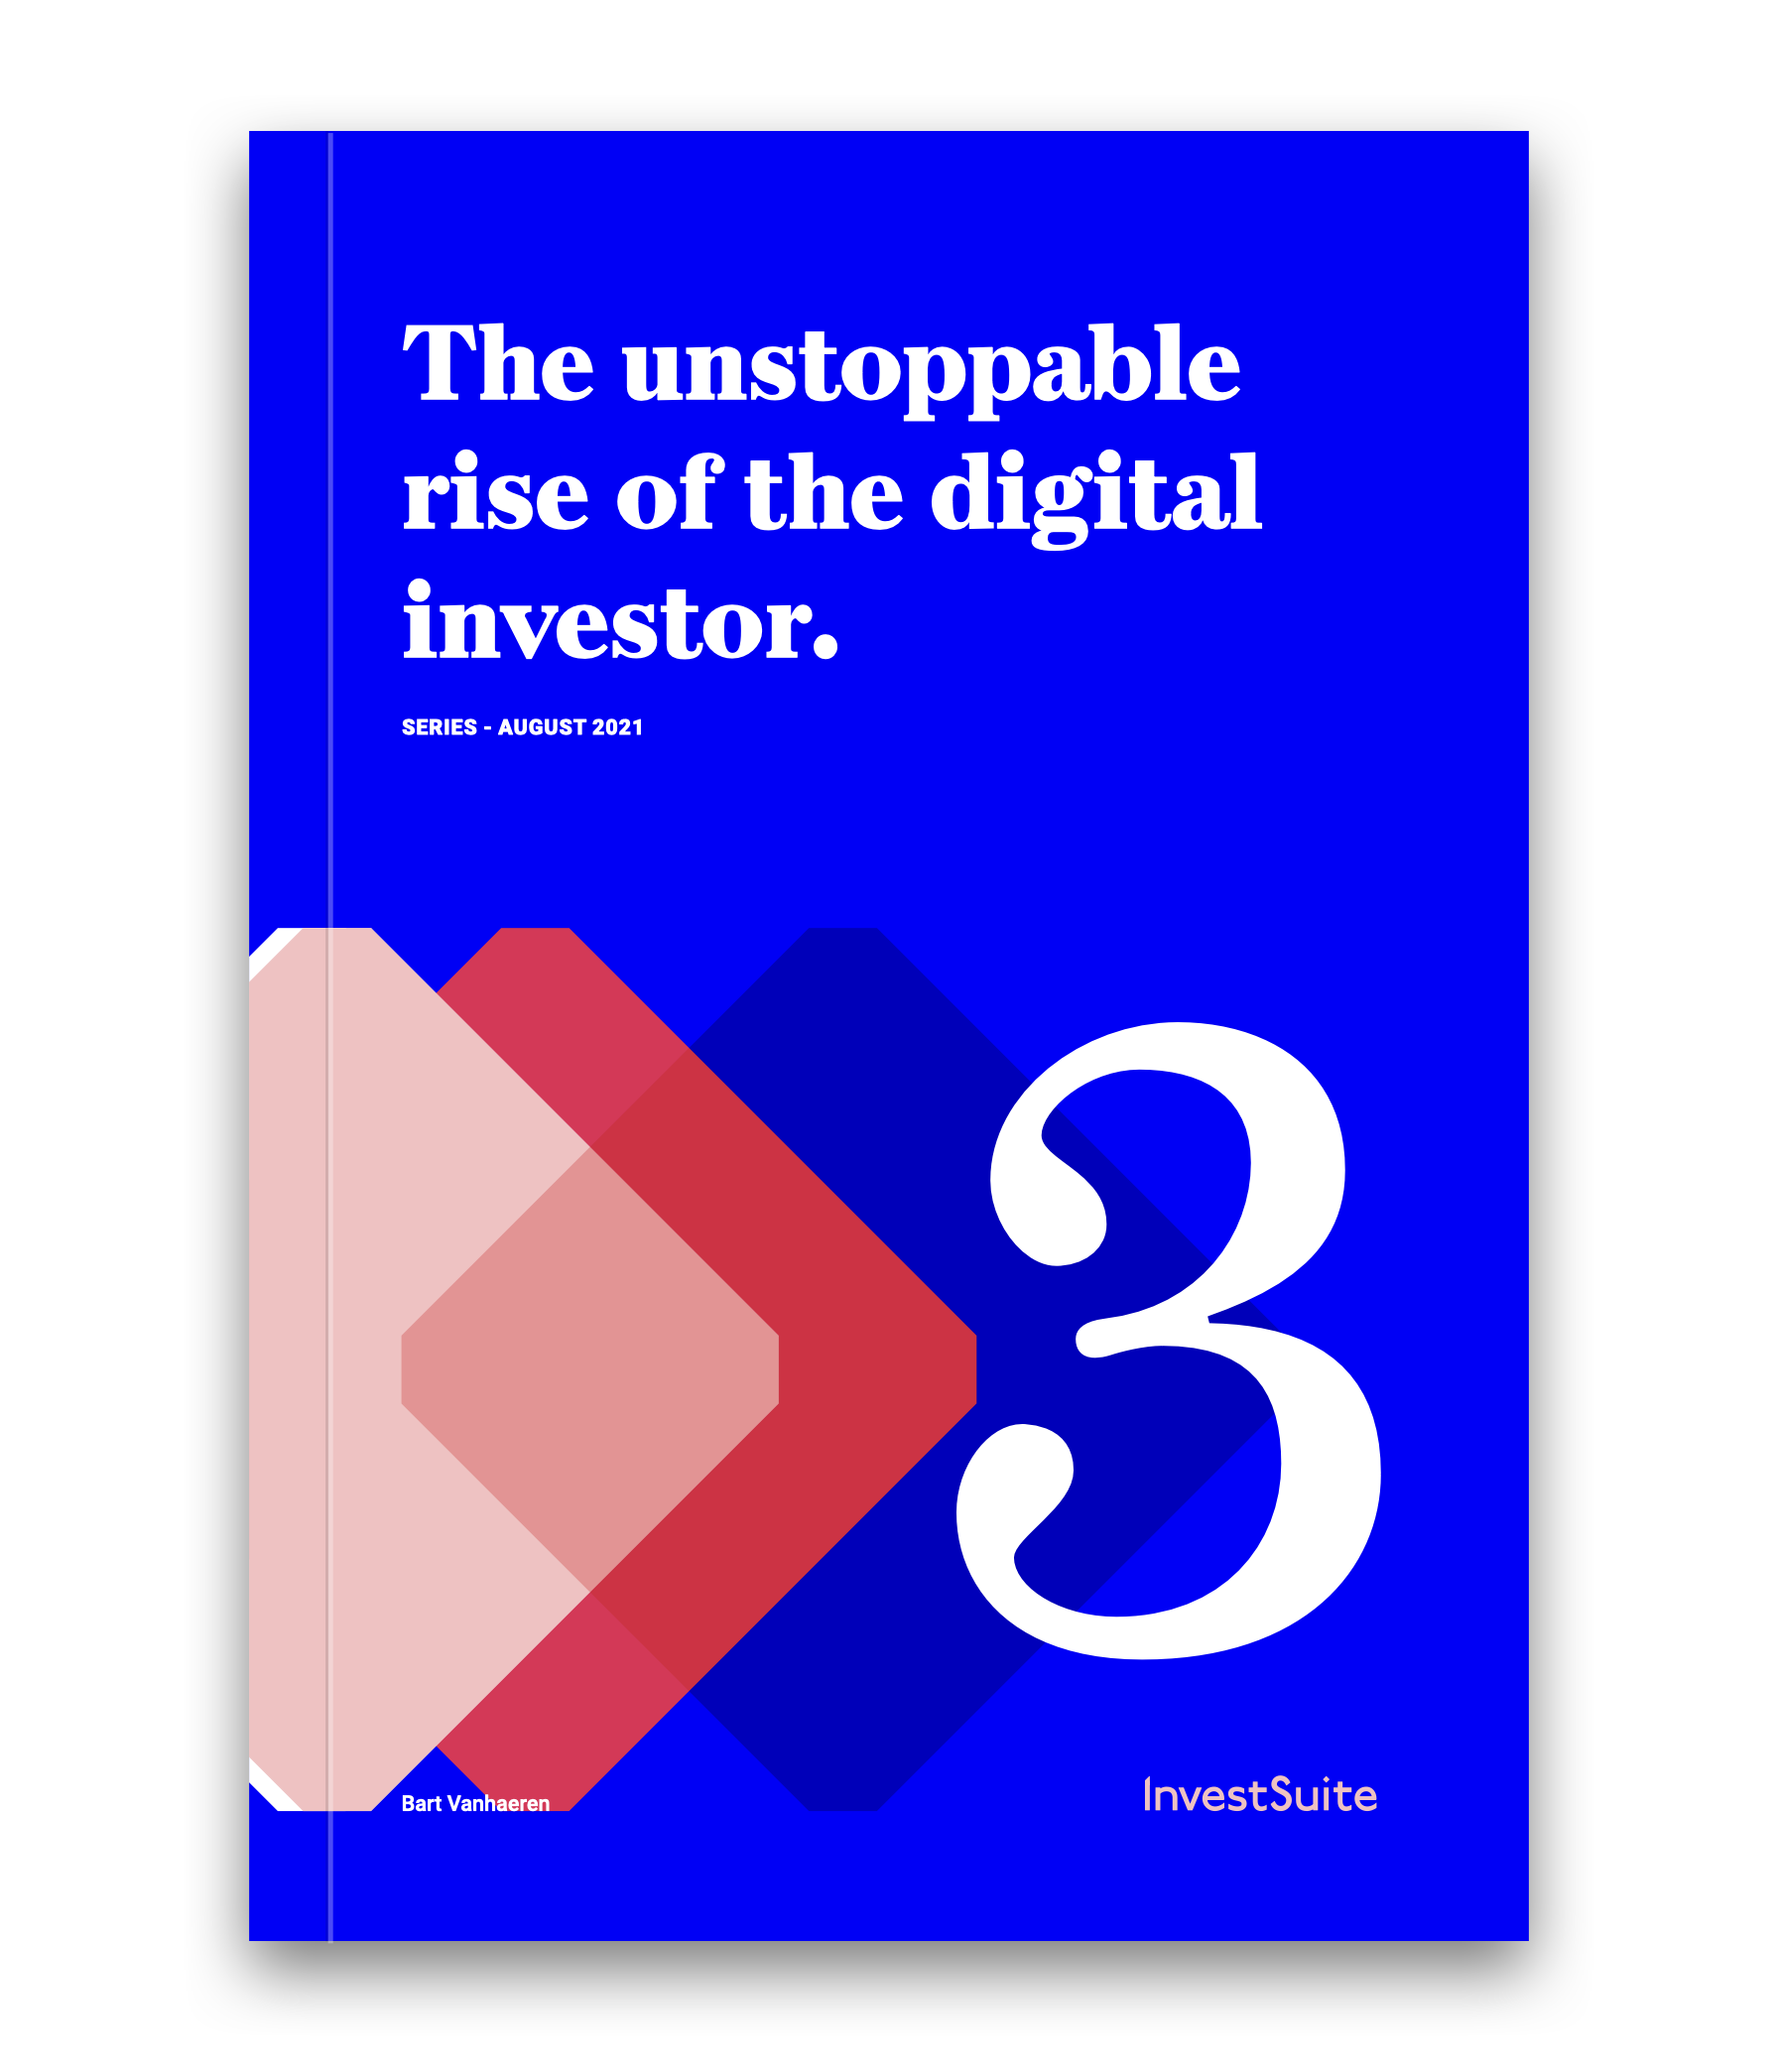 Digital Investor Series - The unstoppable rise of the digital investor 3